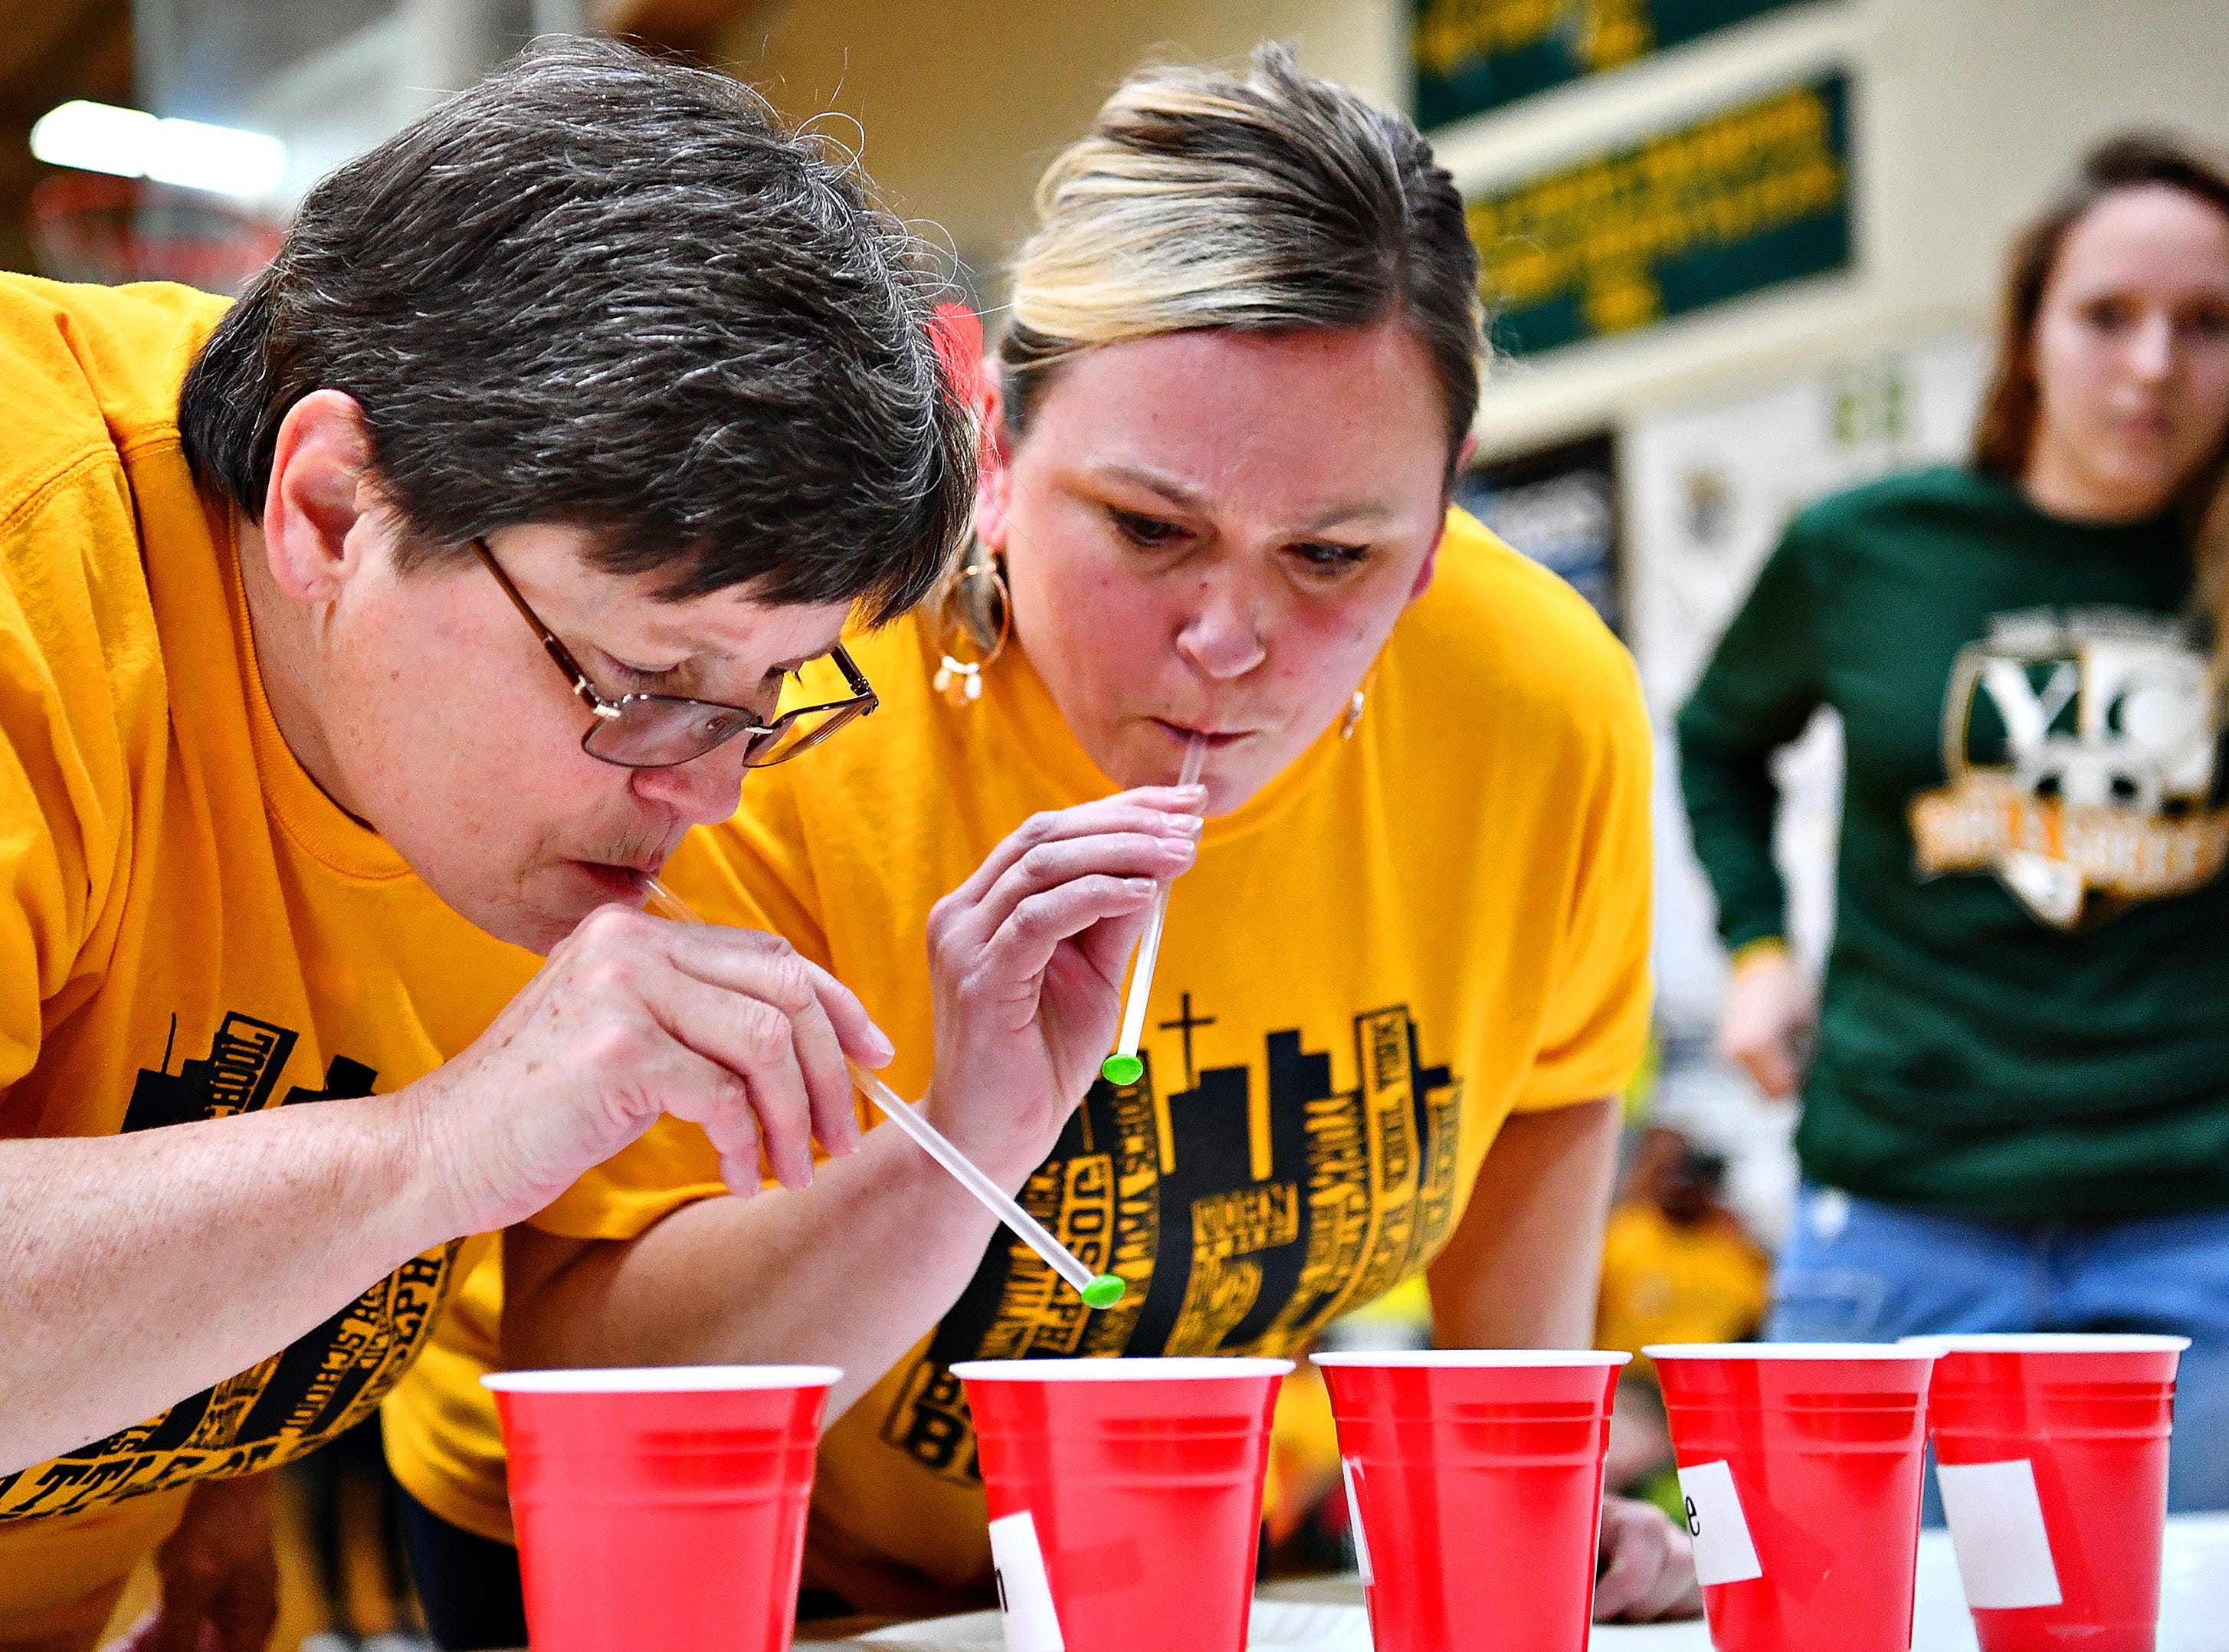 St. Joseph School of York's fourth grade teacher Helen Livingston, left, and 5th/6th grade science teacher Jennifer Sister compete in the Chase the Rainbow contest during Battle of the Buildings at York Catholic High School in York City, Saturday, Jan. 26, 2019. Dawn J. Sagert photo